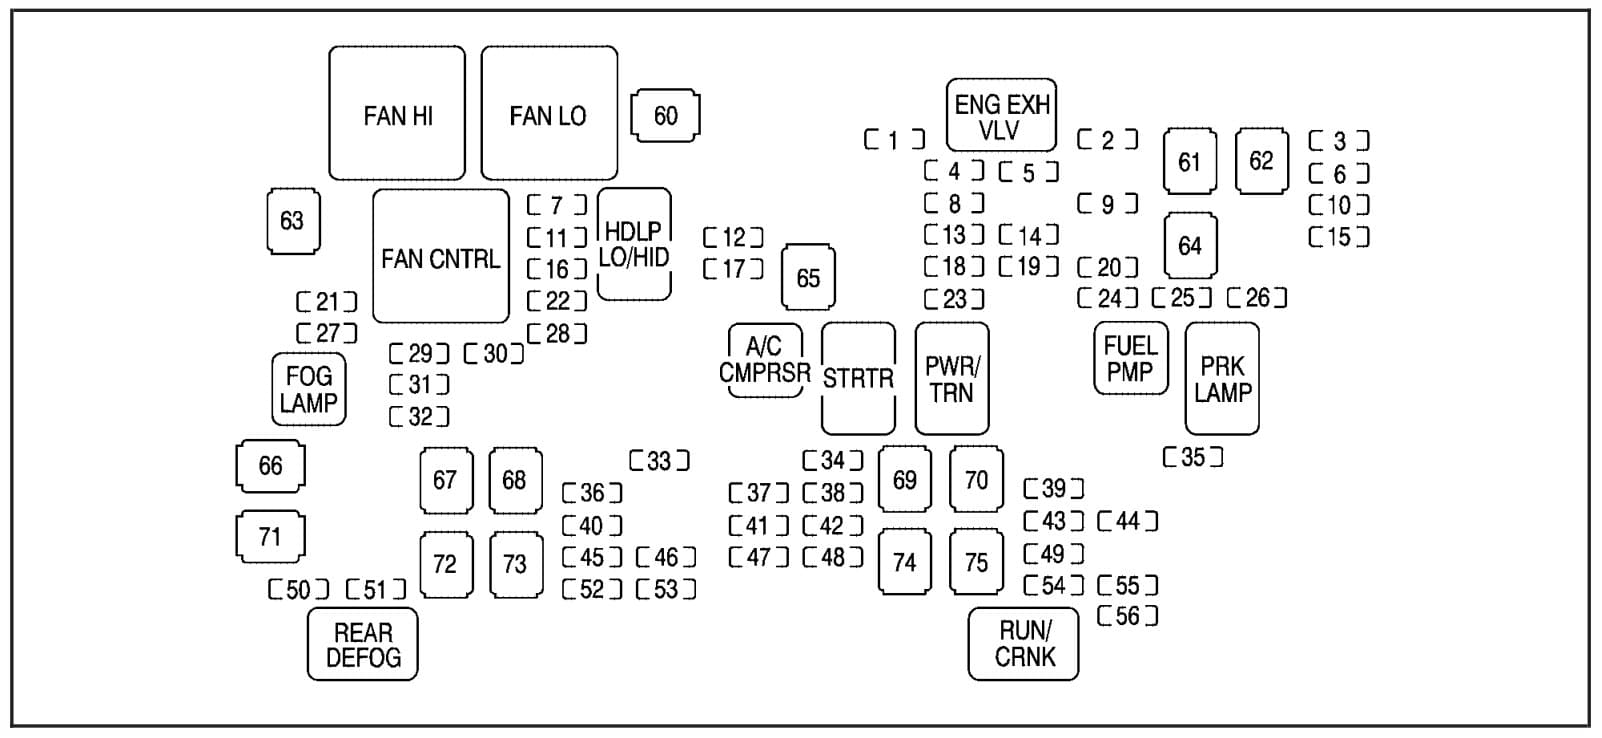 Chevrolet Tahoe - fuse box - engine compartment